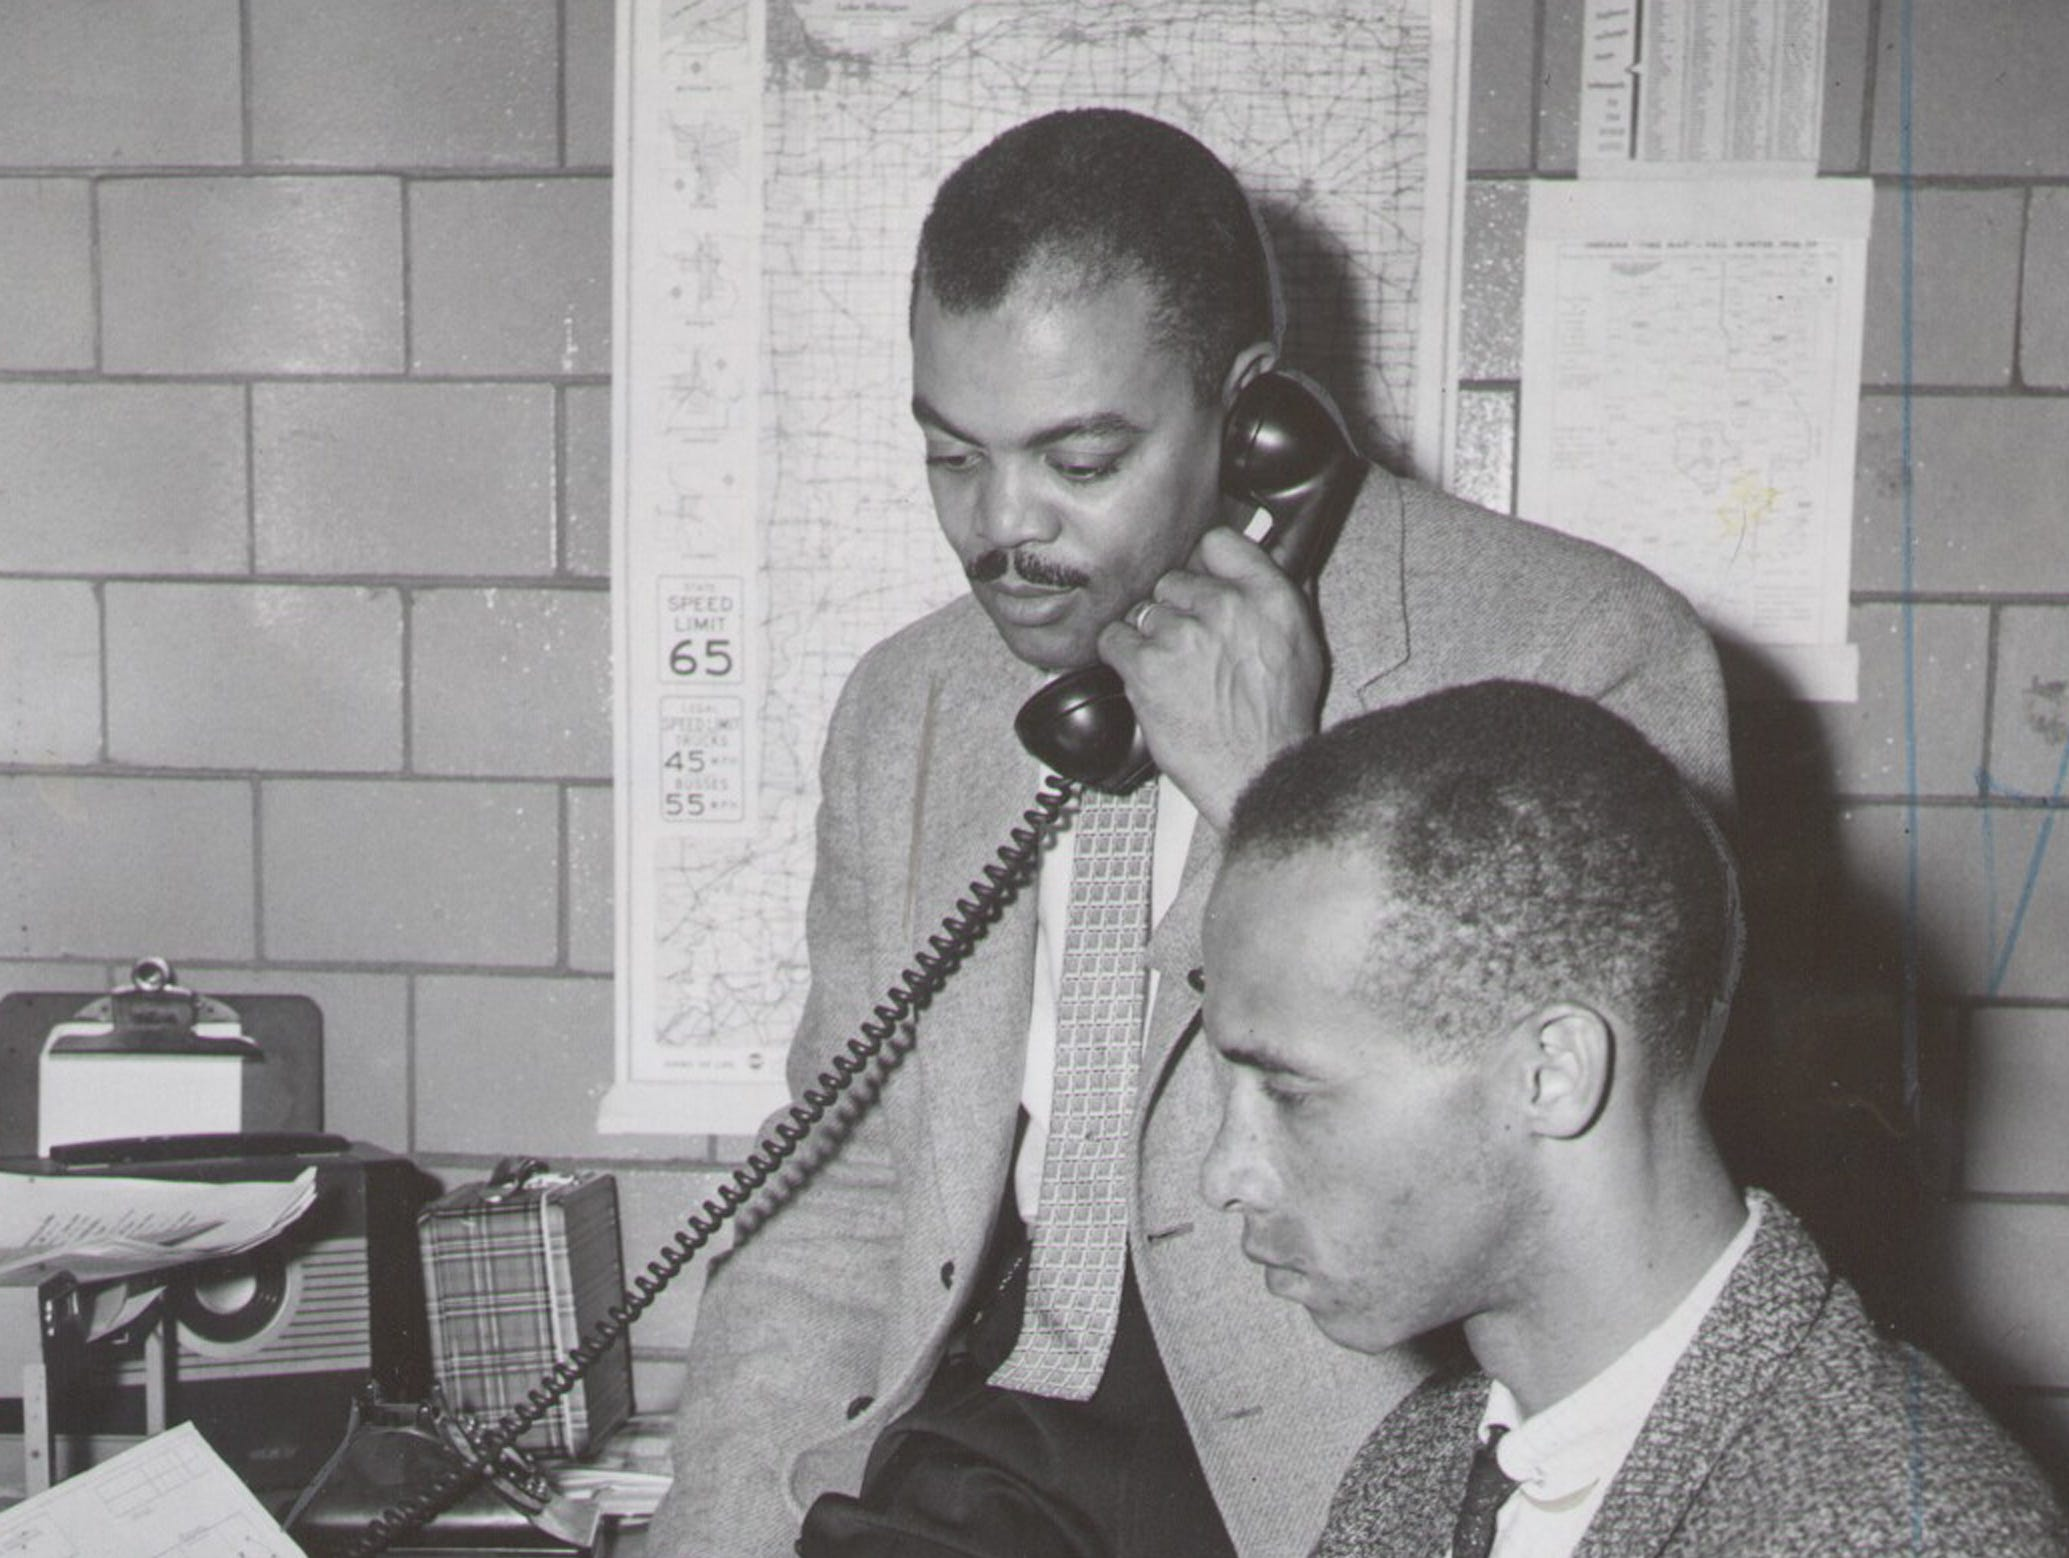 Attucks coach Bill Garrett (front) looks over scouting reports on the Madison Cubs, the opponent in the 1959 semistate tournament, while Ray Crowe, Athletic Director Ray Crowe answers the phone.  March 11, 1959